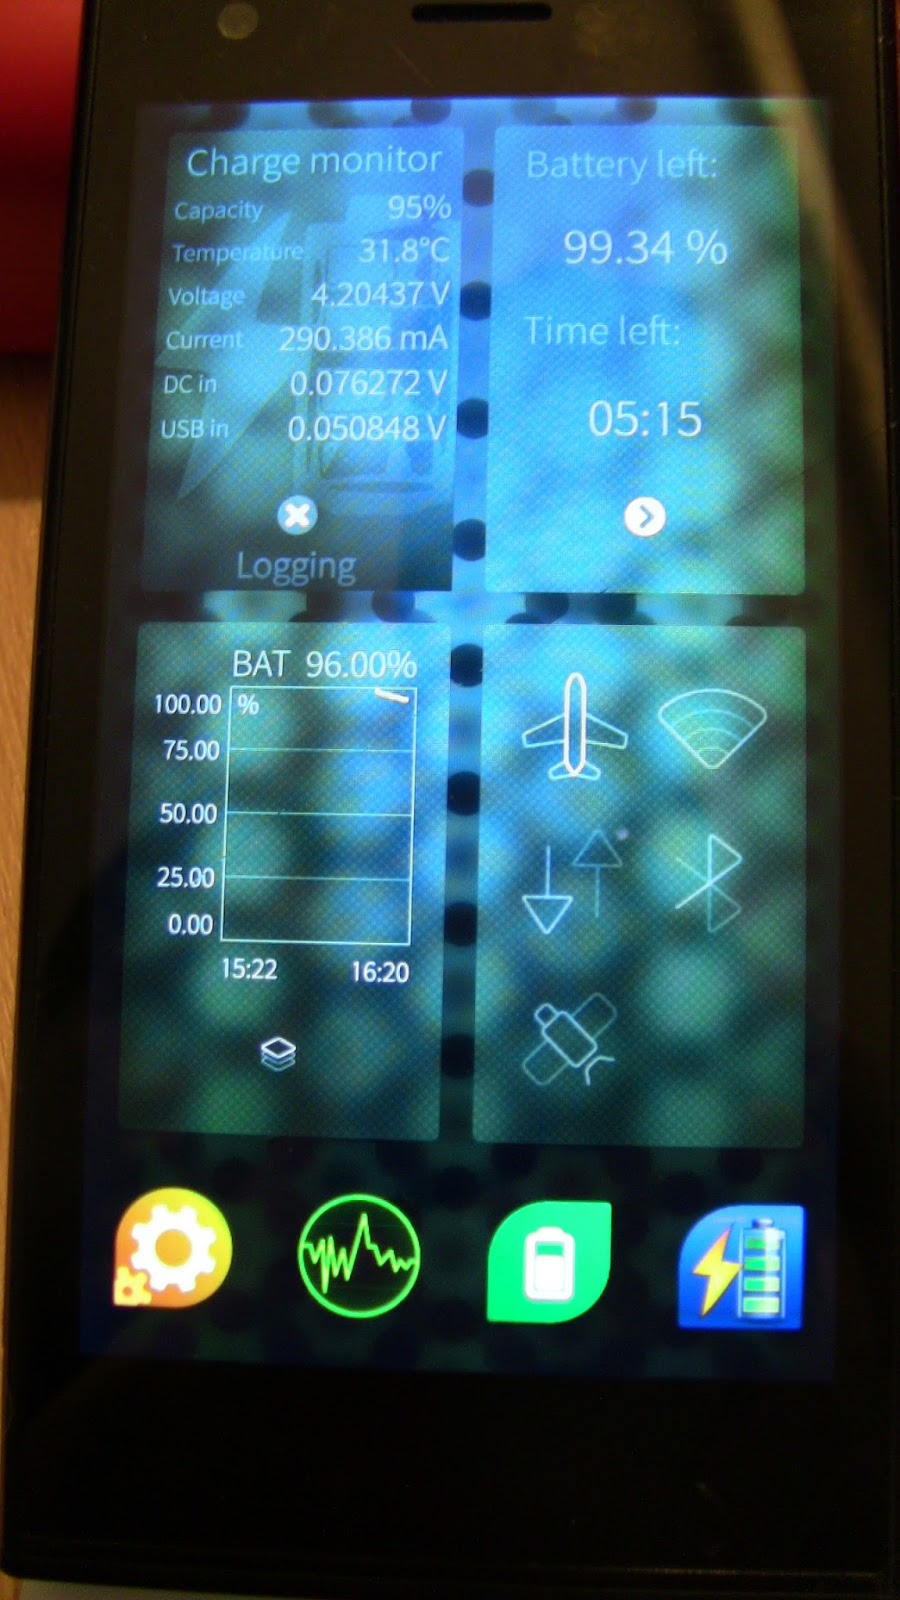 Sailfish Os Reviews Test Compatible Batteries For Jolla Phone Htc Desire C Circuit Diagram During My Discharge Tests I Always Attached A Fully Charged Battery Booted The Already On Airplane Mode Display Setting Brightest And Started Four